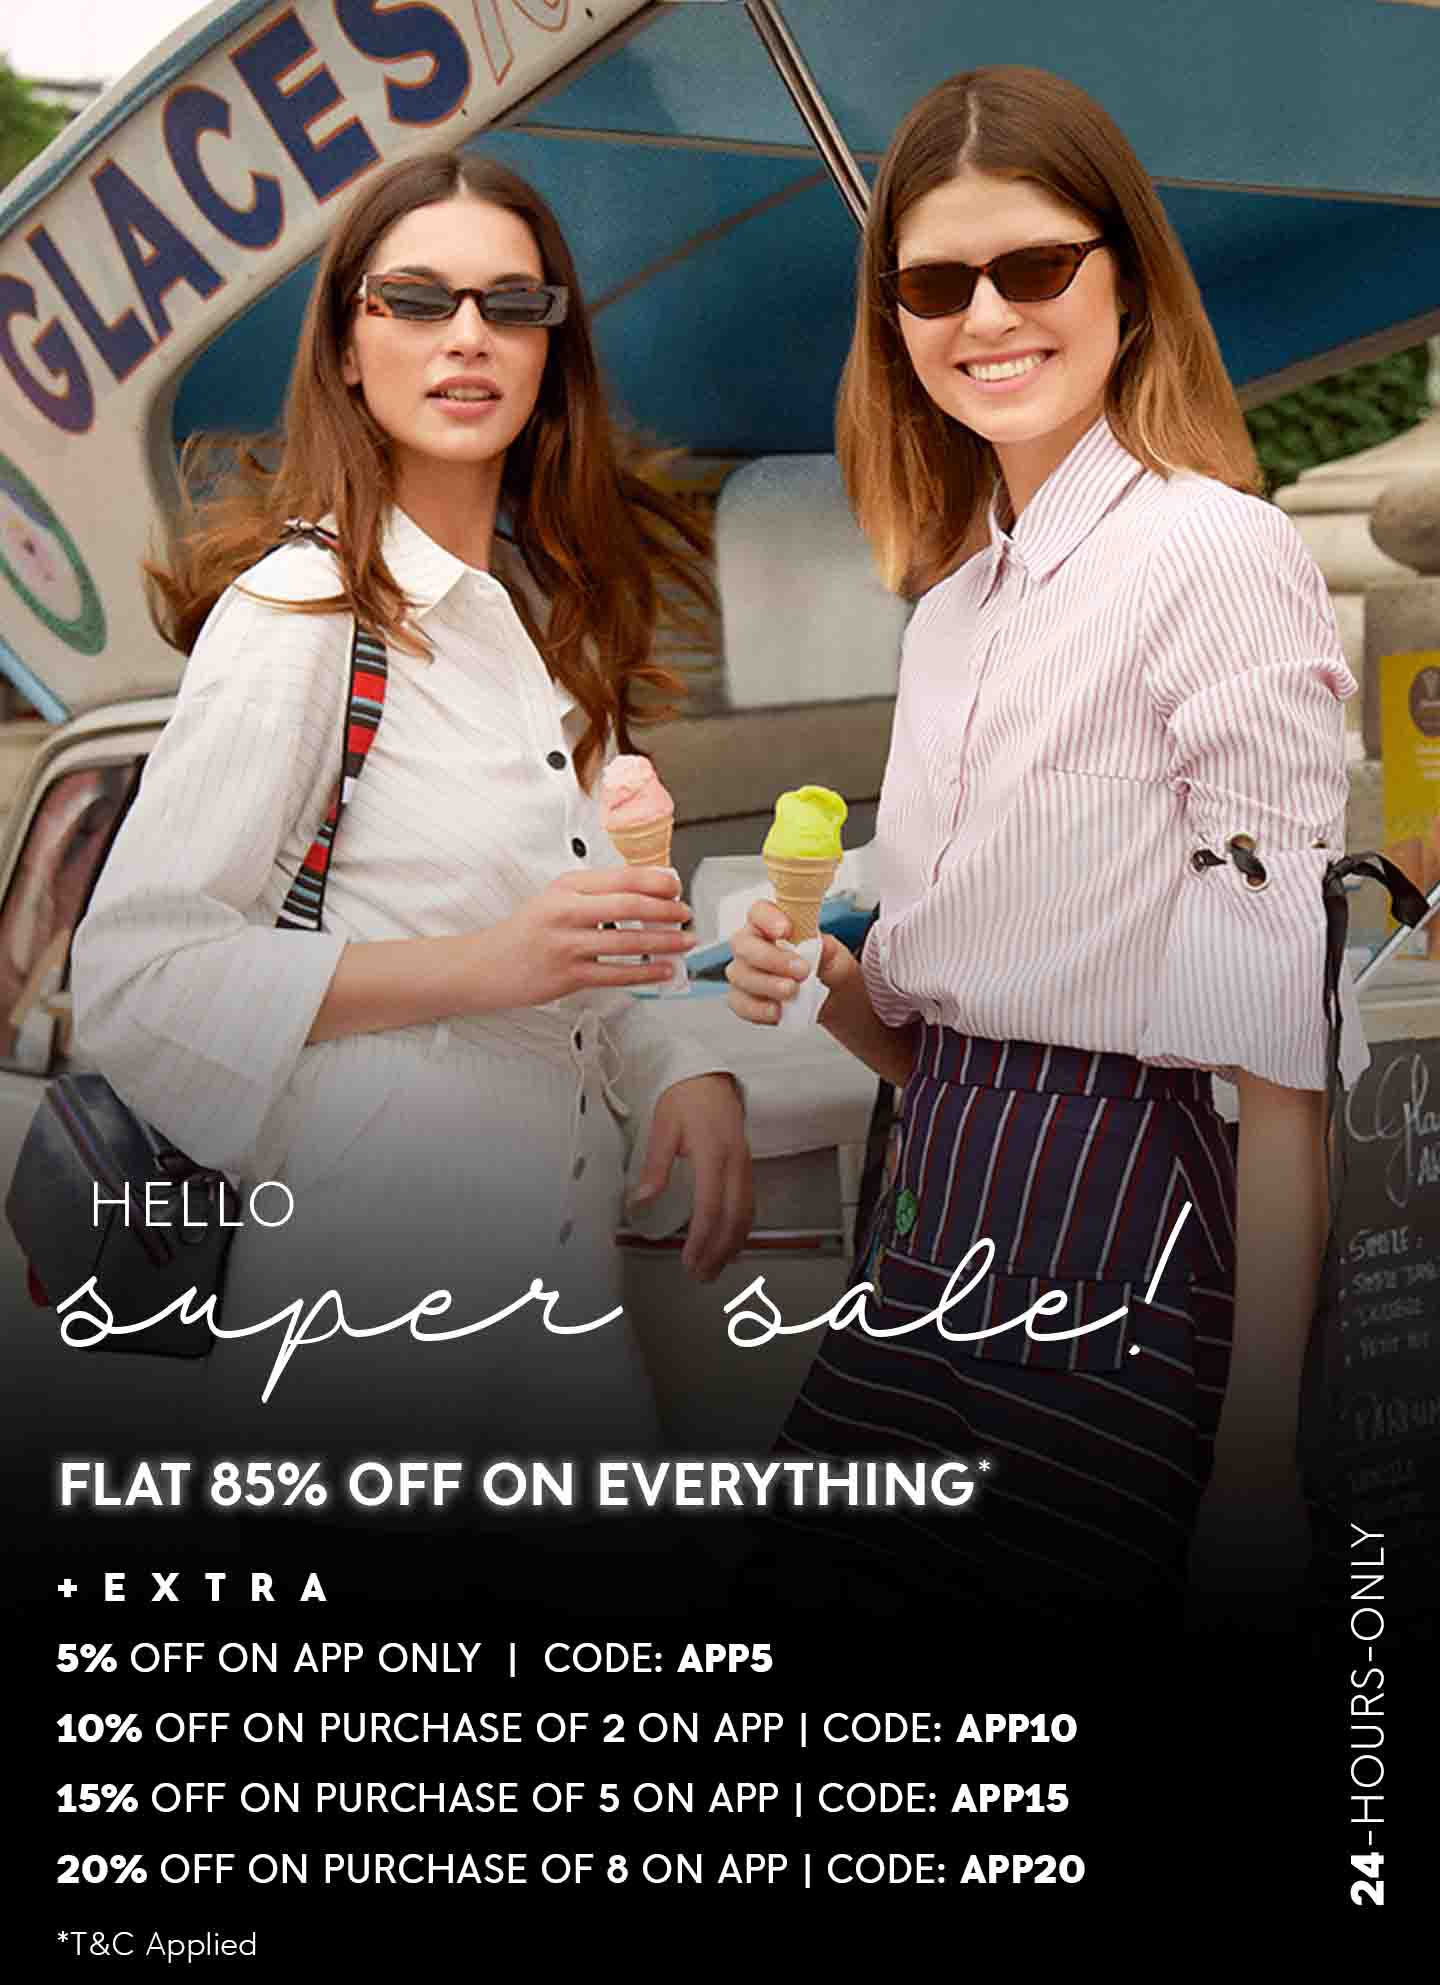 FLAT 85% OFF ON EVERYTHING